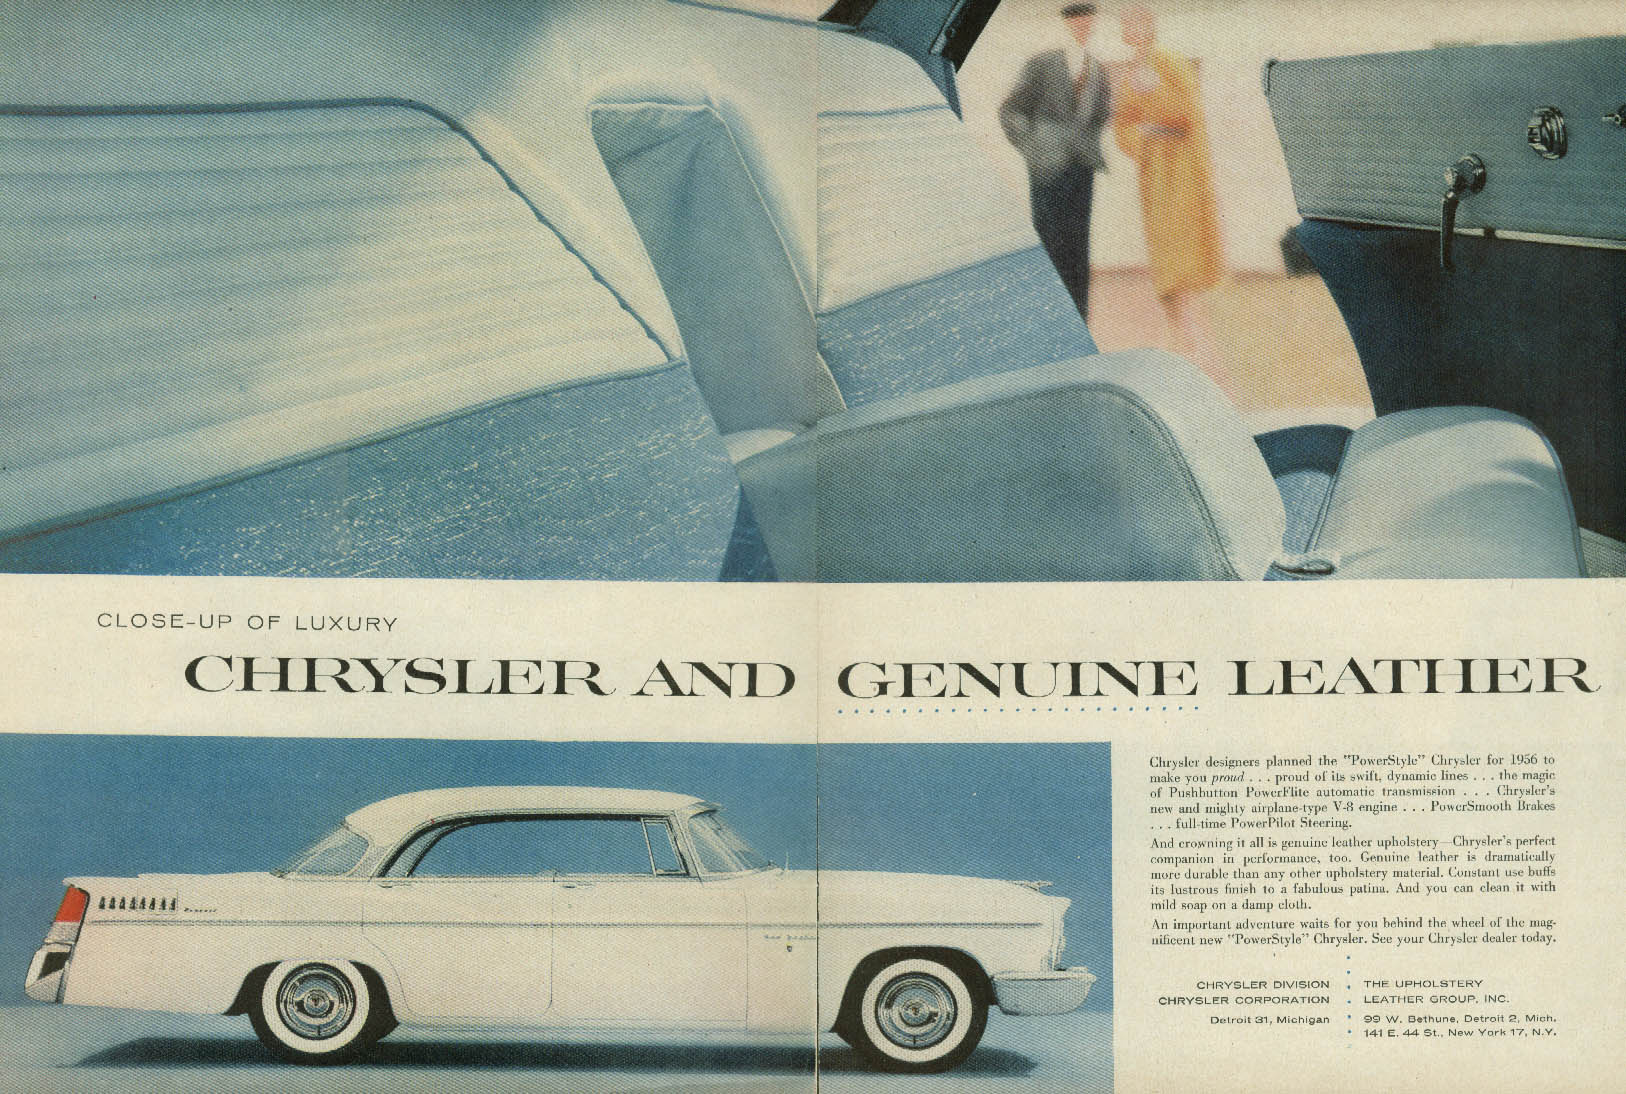 Close-up of Luxury Chrysler New Yorker Genuine Leather ad 1956 T